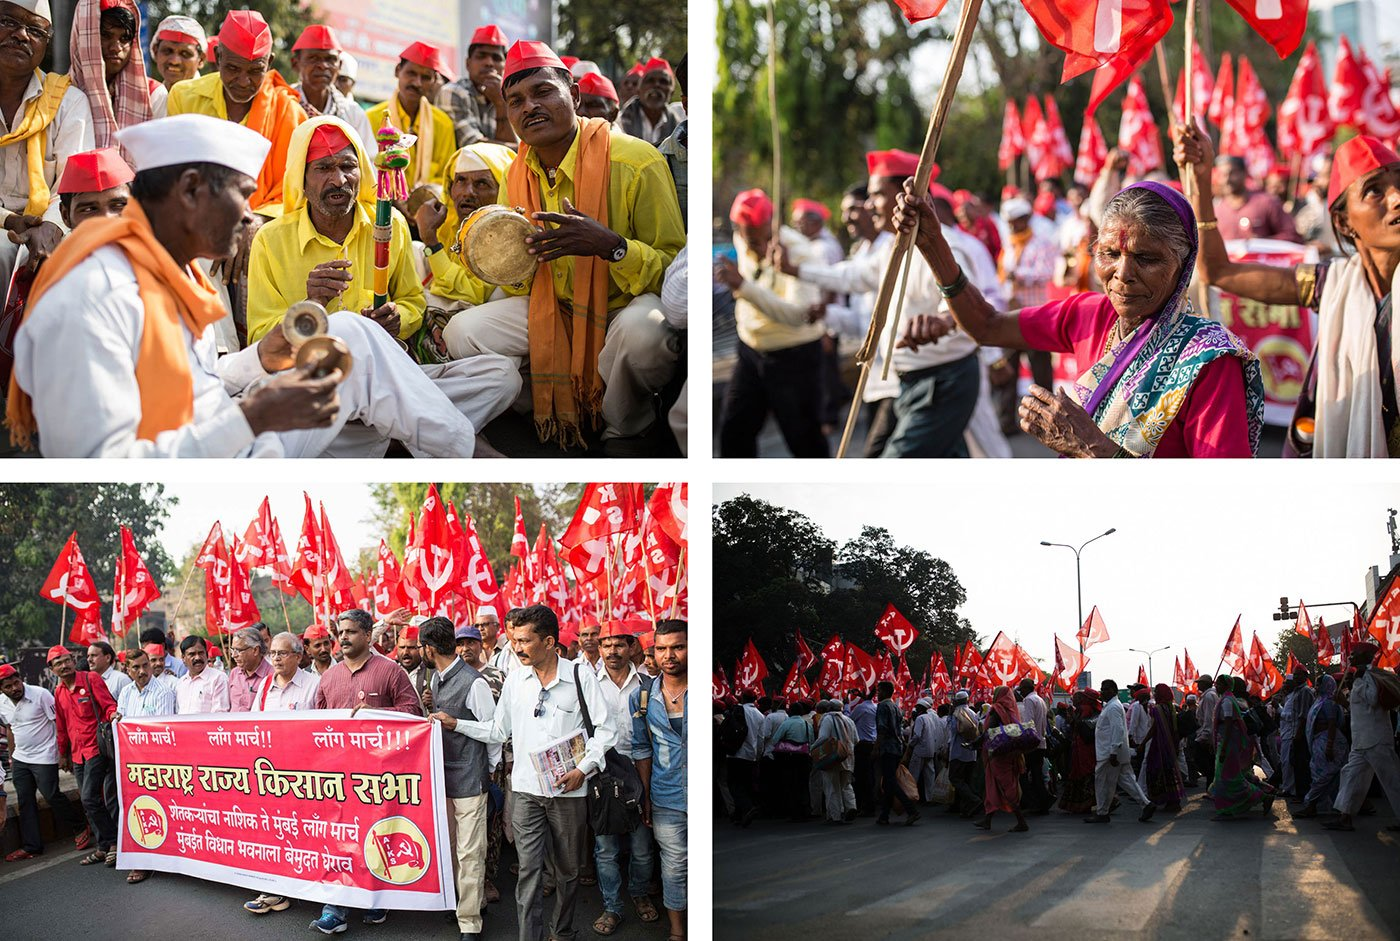 Top left - Three men singing and playing instruments. One of them is playing the cymbals. Men in red hats look on  Top right - An old woman dancing in front of people marching  Bottom left - Farmers marching holding red communist flags  Bottom right - Farmers marching holding red communist flags